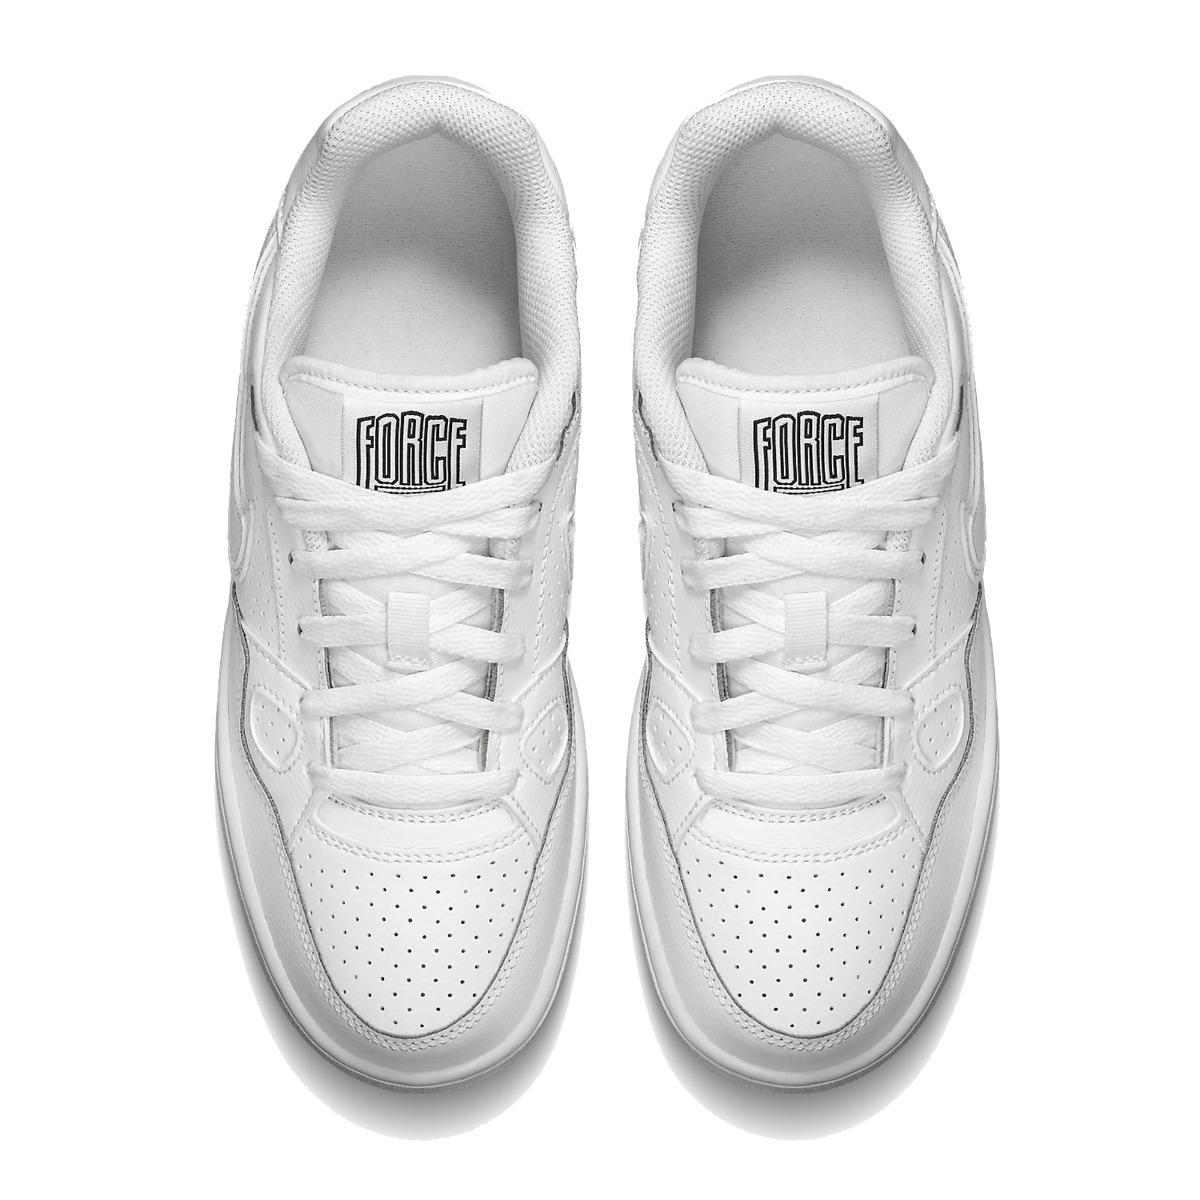 a697c6cafa5 tenis nike son of force mujer correr gym mujer piel casual. Cargando zoom.